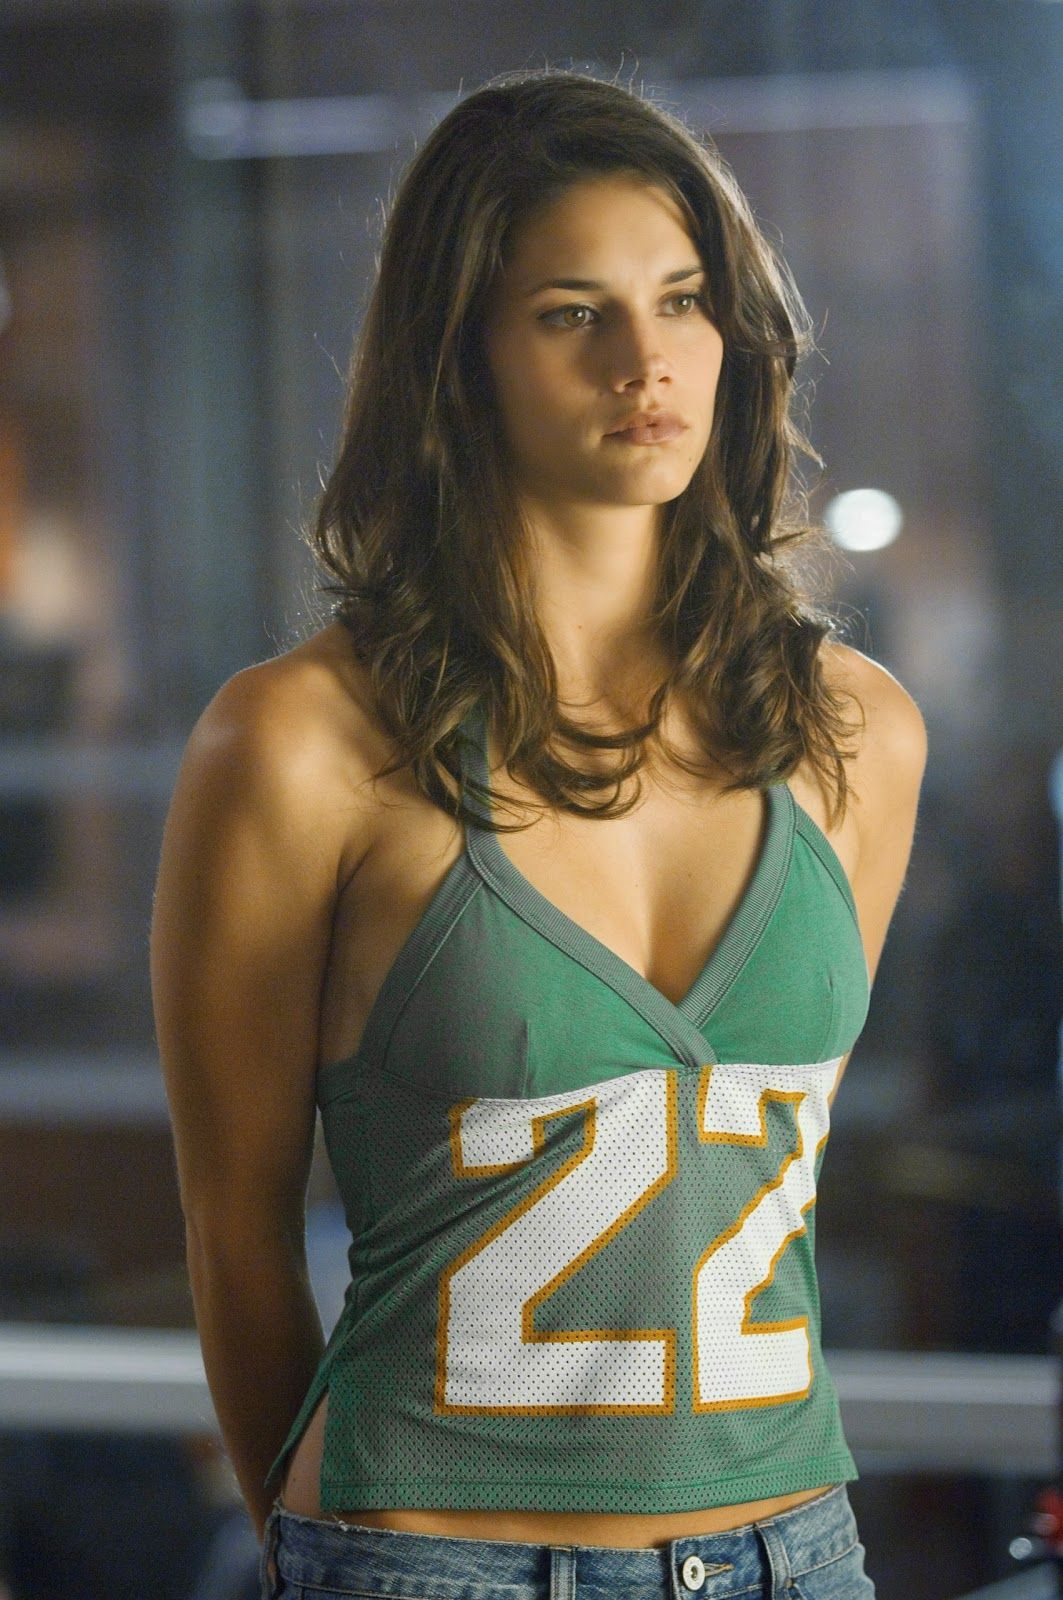 Missy Peregrym nude (89 foto and video), Tits, Is a cute, Instagram, cleavage 2015